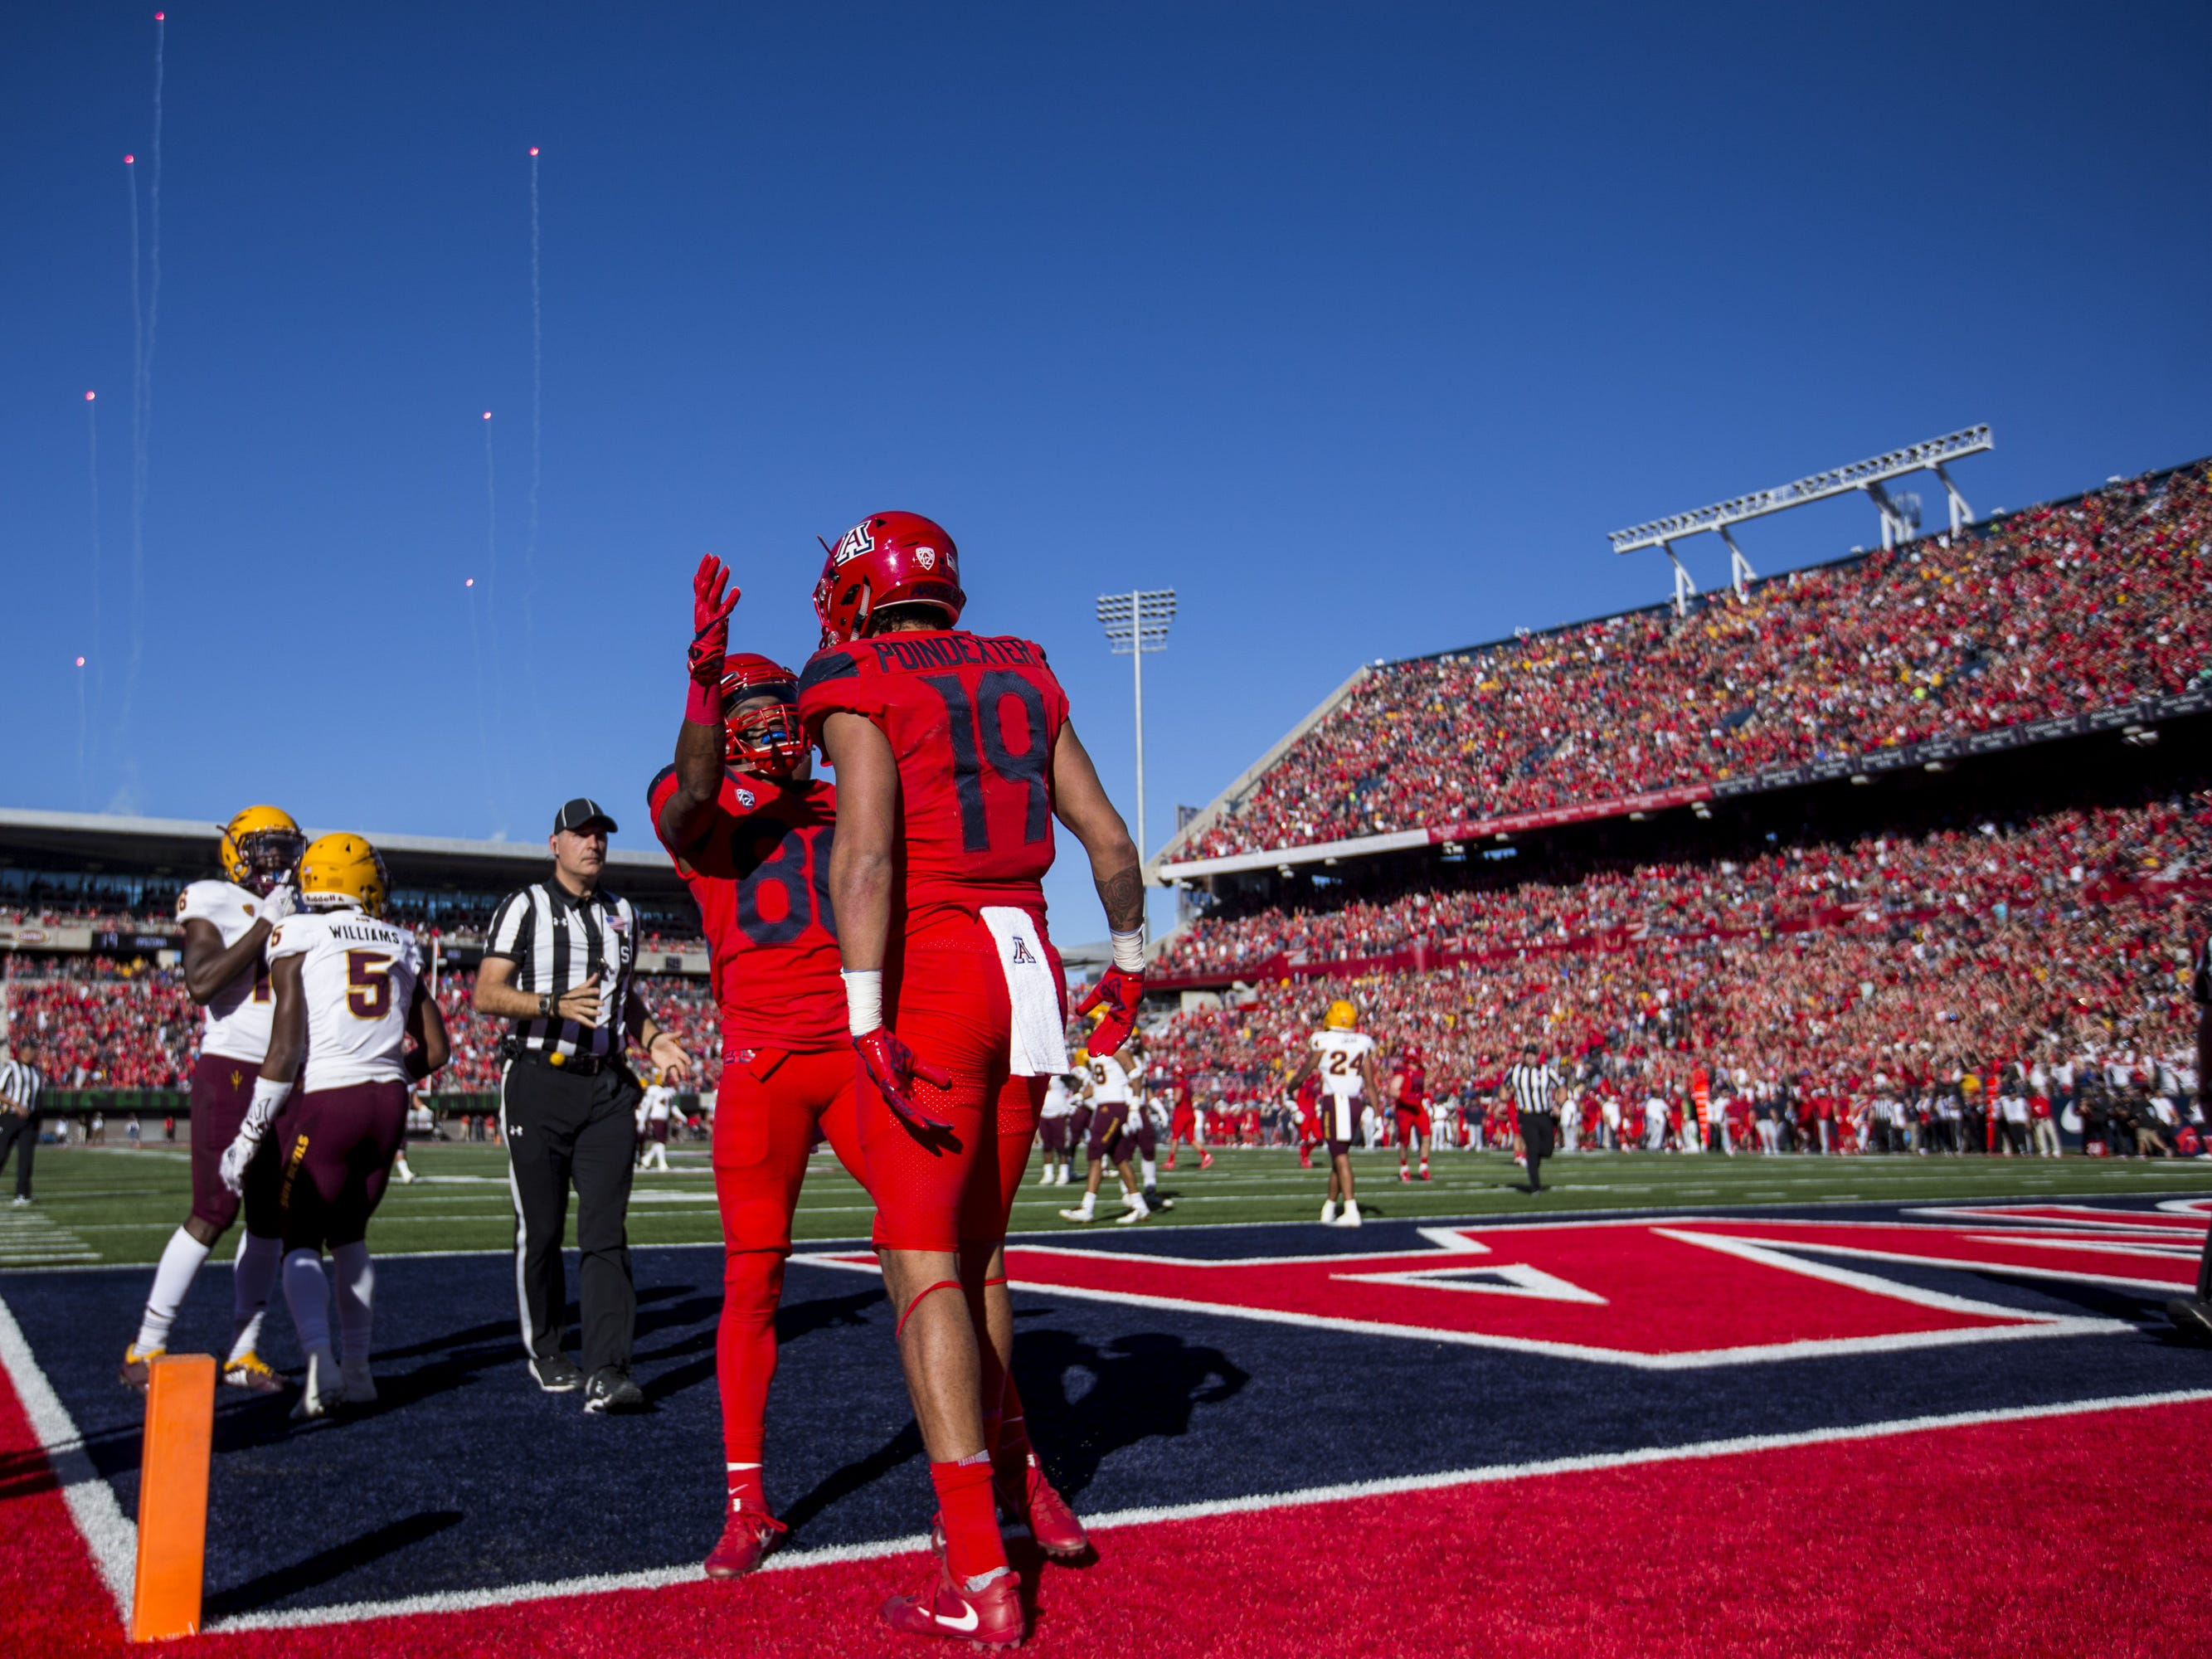 Arizona's Shawn Poindexter (19) celebrates with Stanley Berryhill III after Poindexter scored a touchdown reception against Arizona State during the first half of the Territorial Cup on Saturday, Nov. 24, 2018, at Arizona Stadium in Tucson, Ariz.